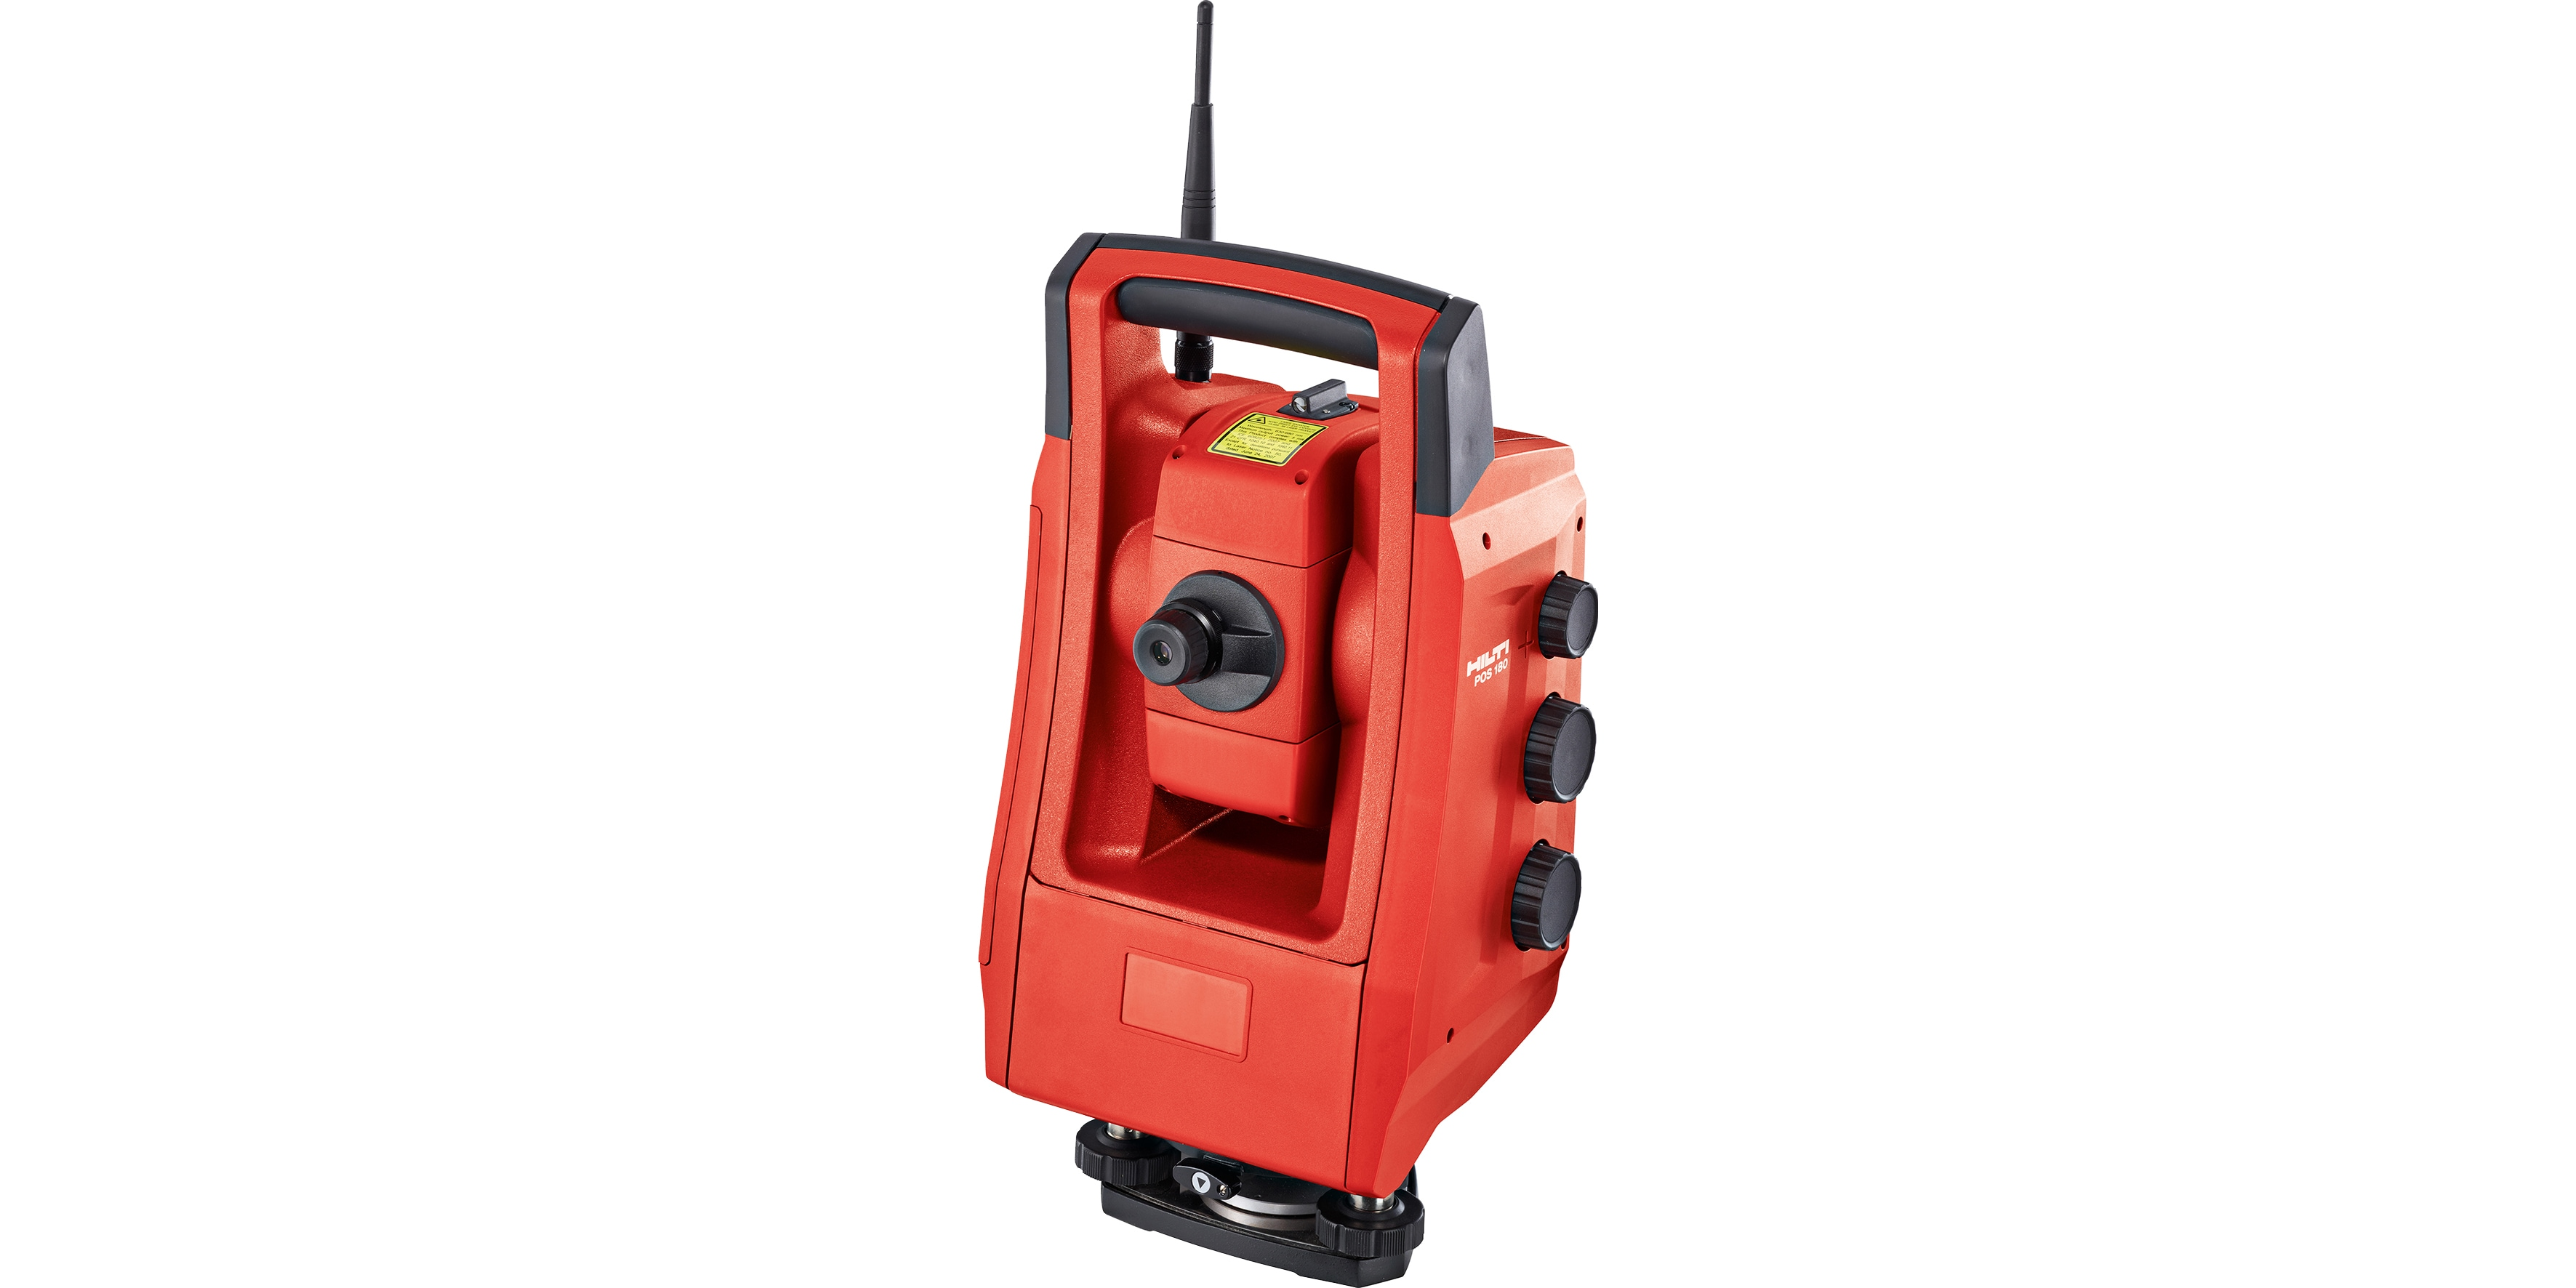 Hilti robotic total station